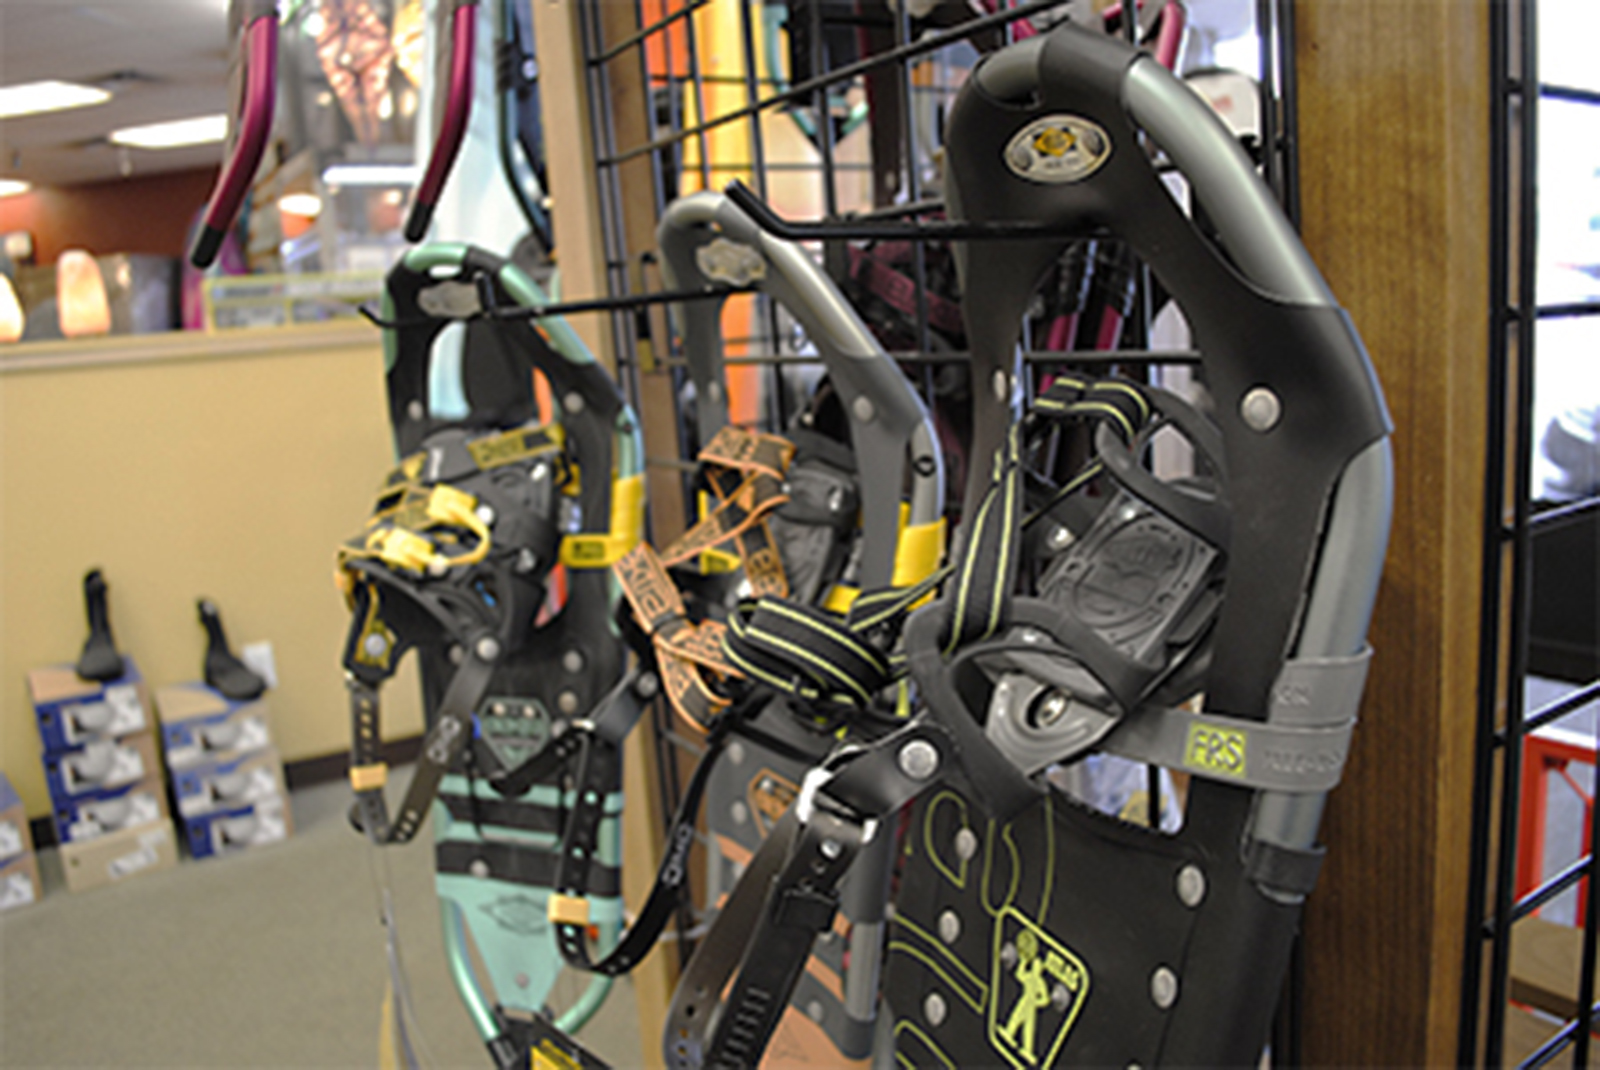 Snowshoe rentals are $10. Kayaks and SUPs are for rent in the boating months.